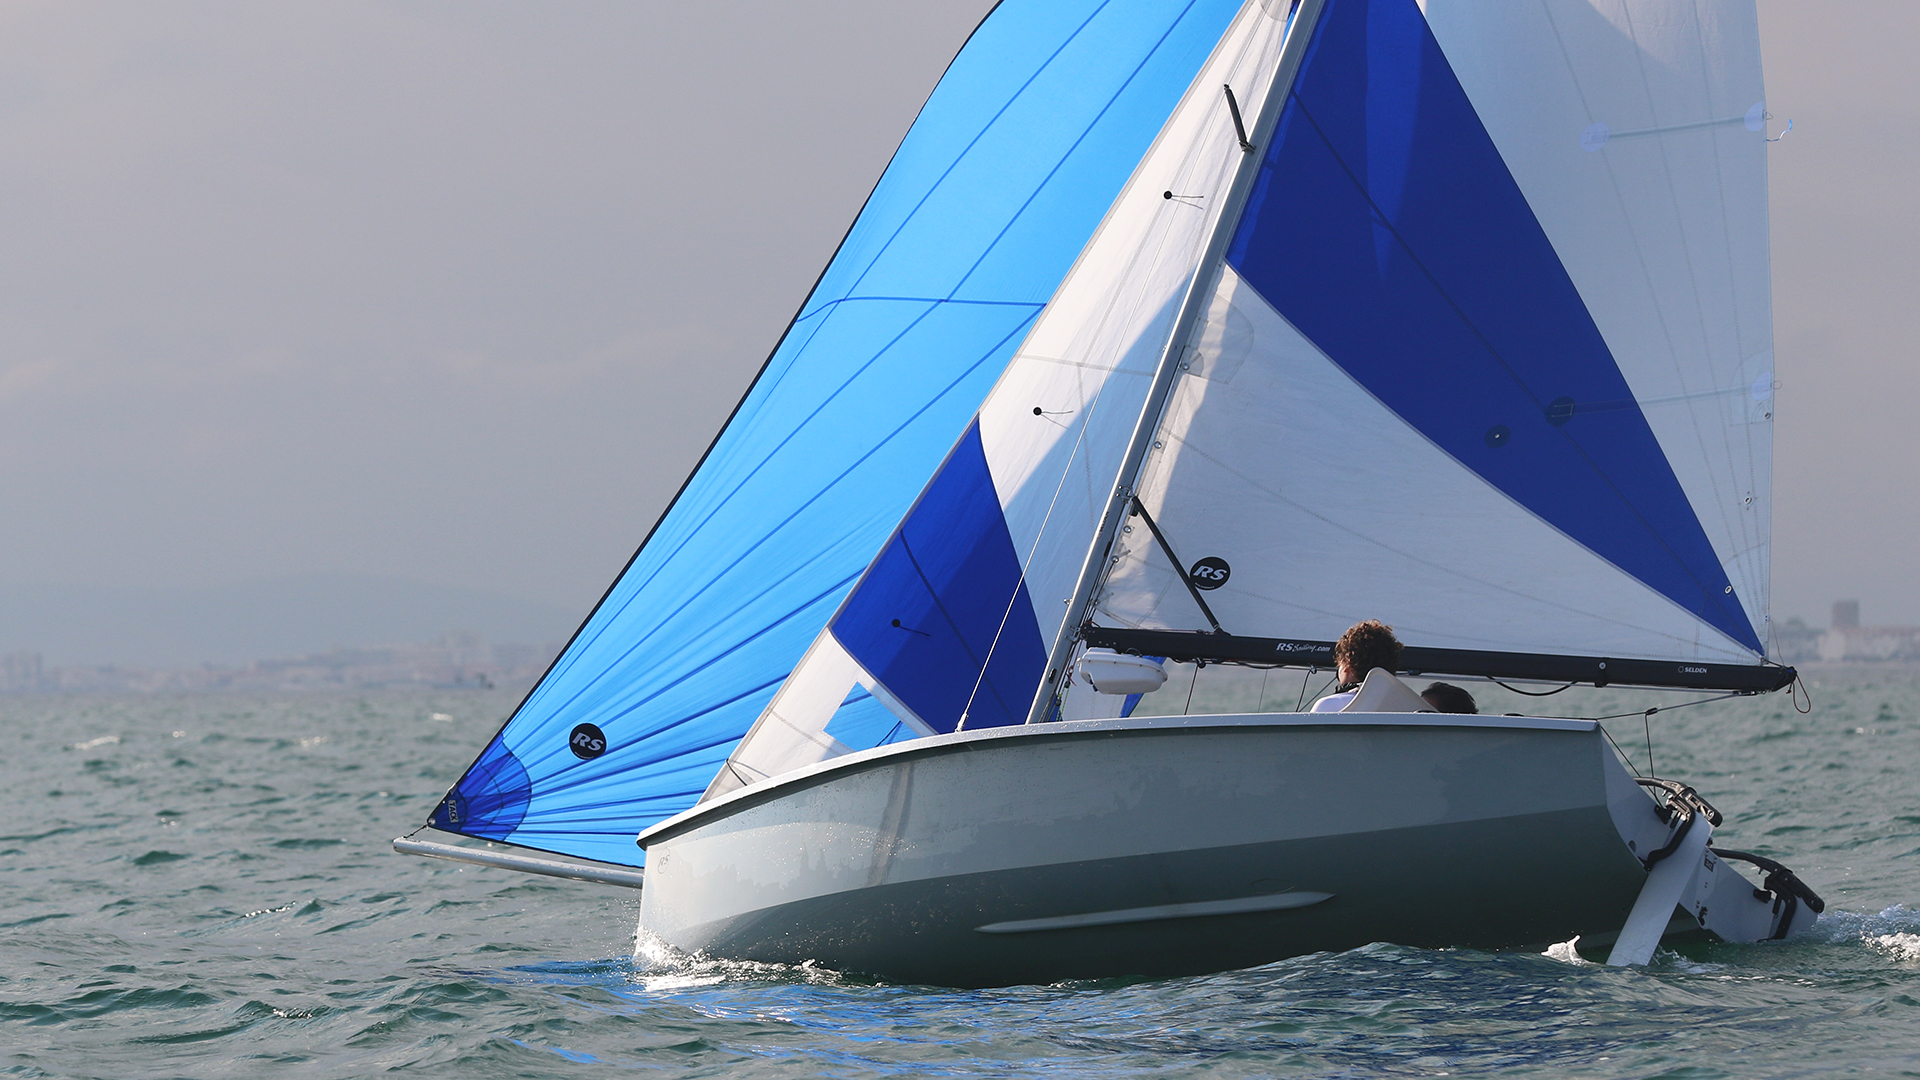 The Para Sailing System is a conversion kit that enables a standard RS sailing dinghy to be converted for most disabilities including para sailing.